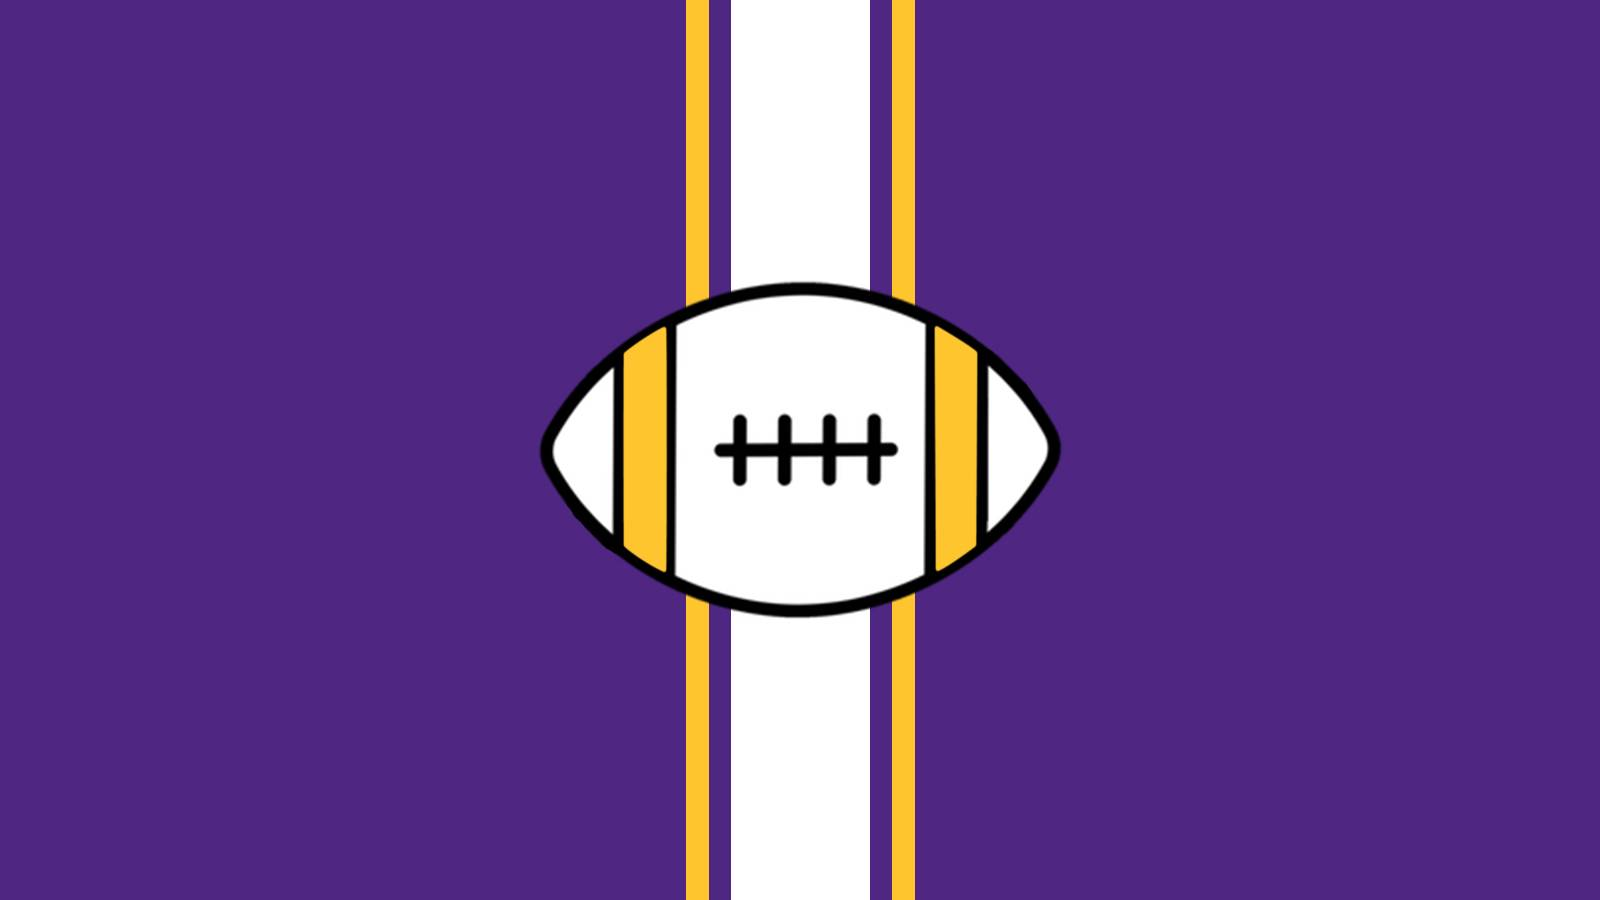 Atlanta Falcons at Minnesota Vikings